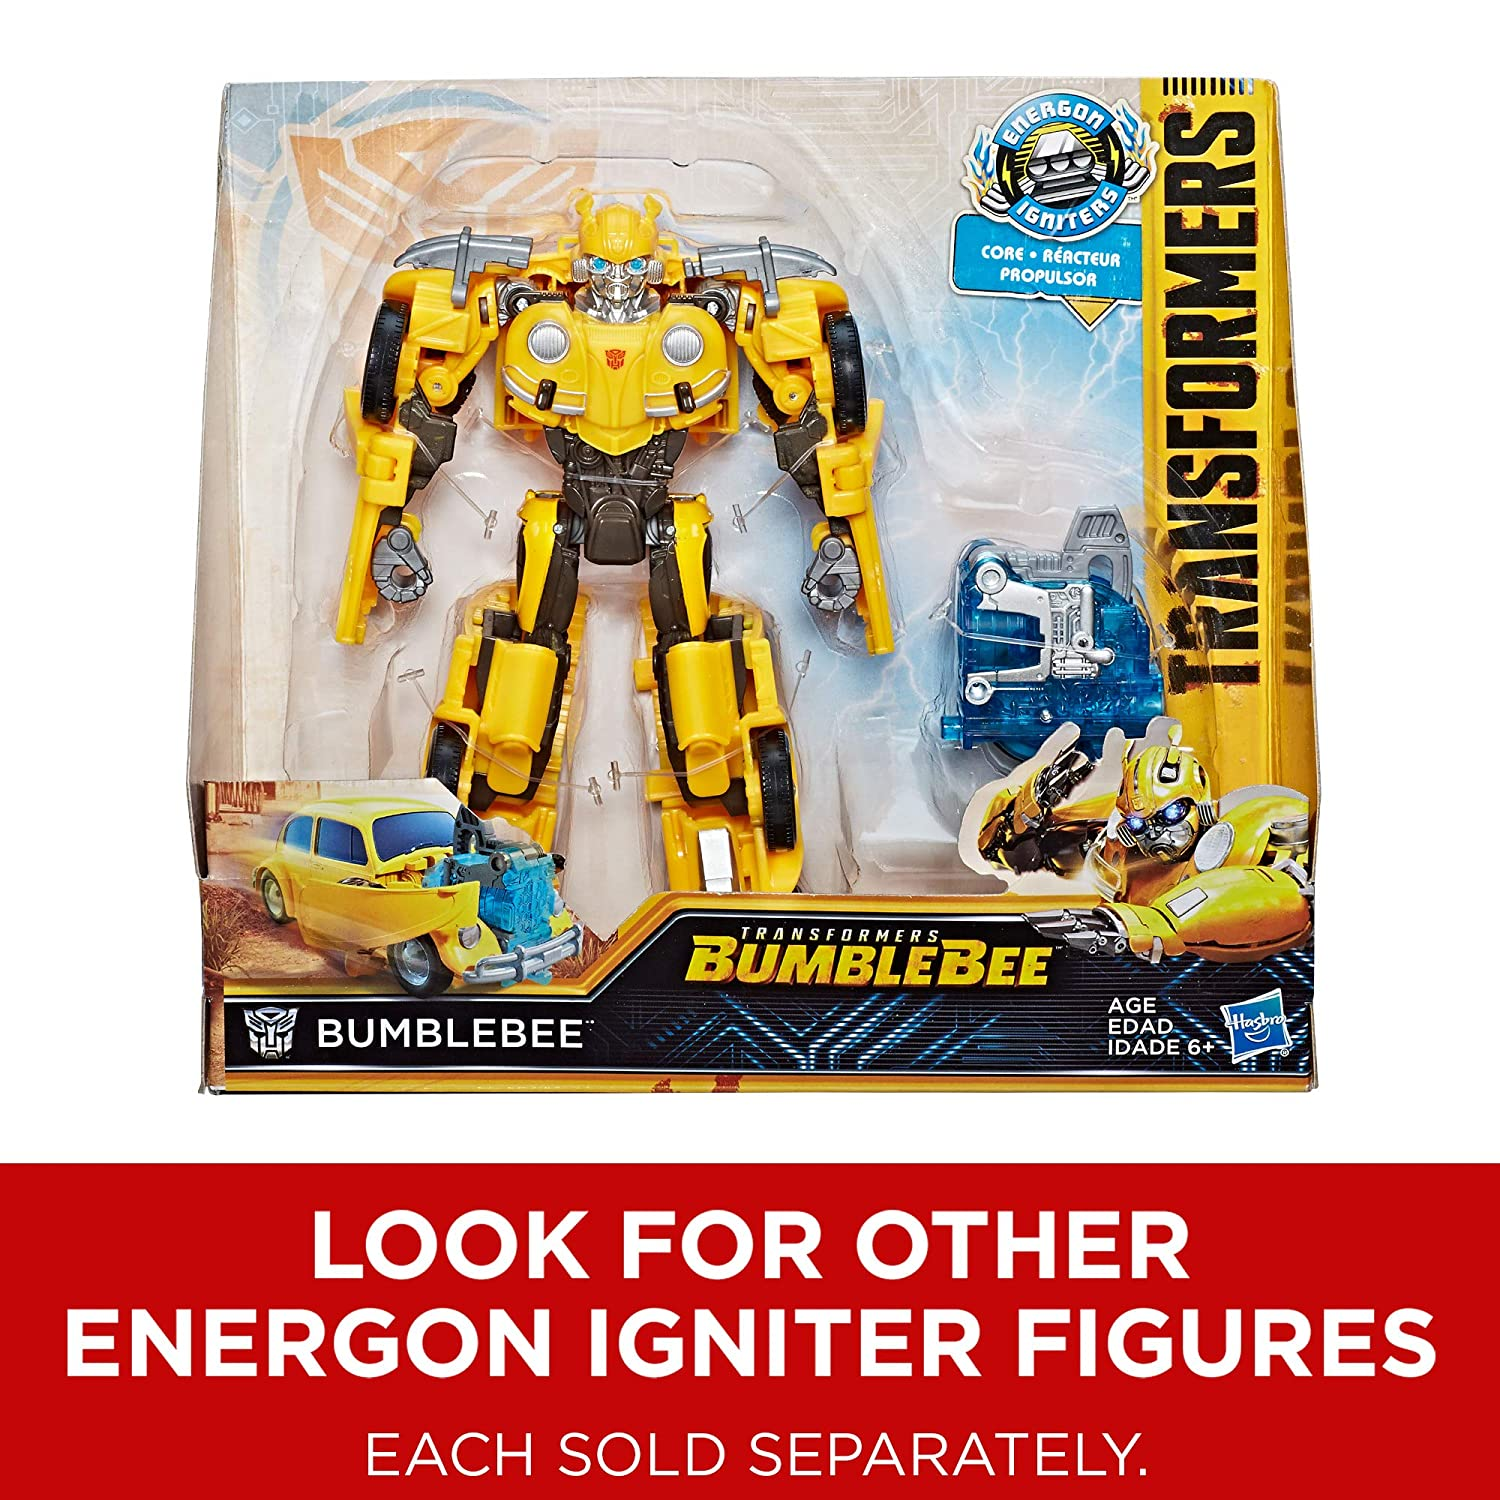 Energon Igniters Nitro Bumblebee Action Figure Toys for Kids 6 /& Up Transformers: Bumblebee Movie Toys 7 7 Hasbro E0754 Included Core Powers Driving Action